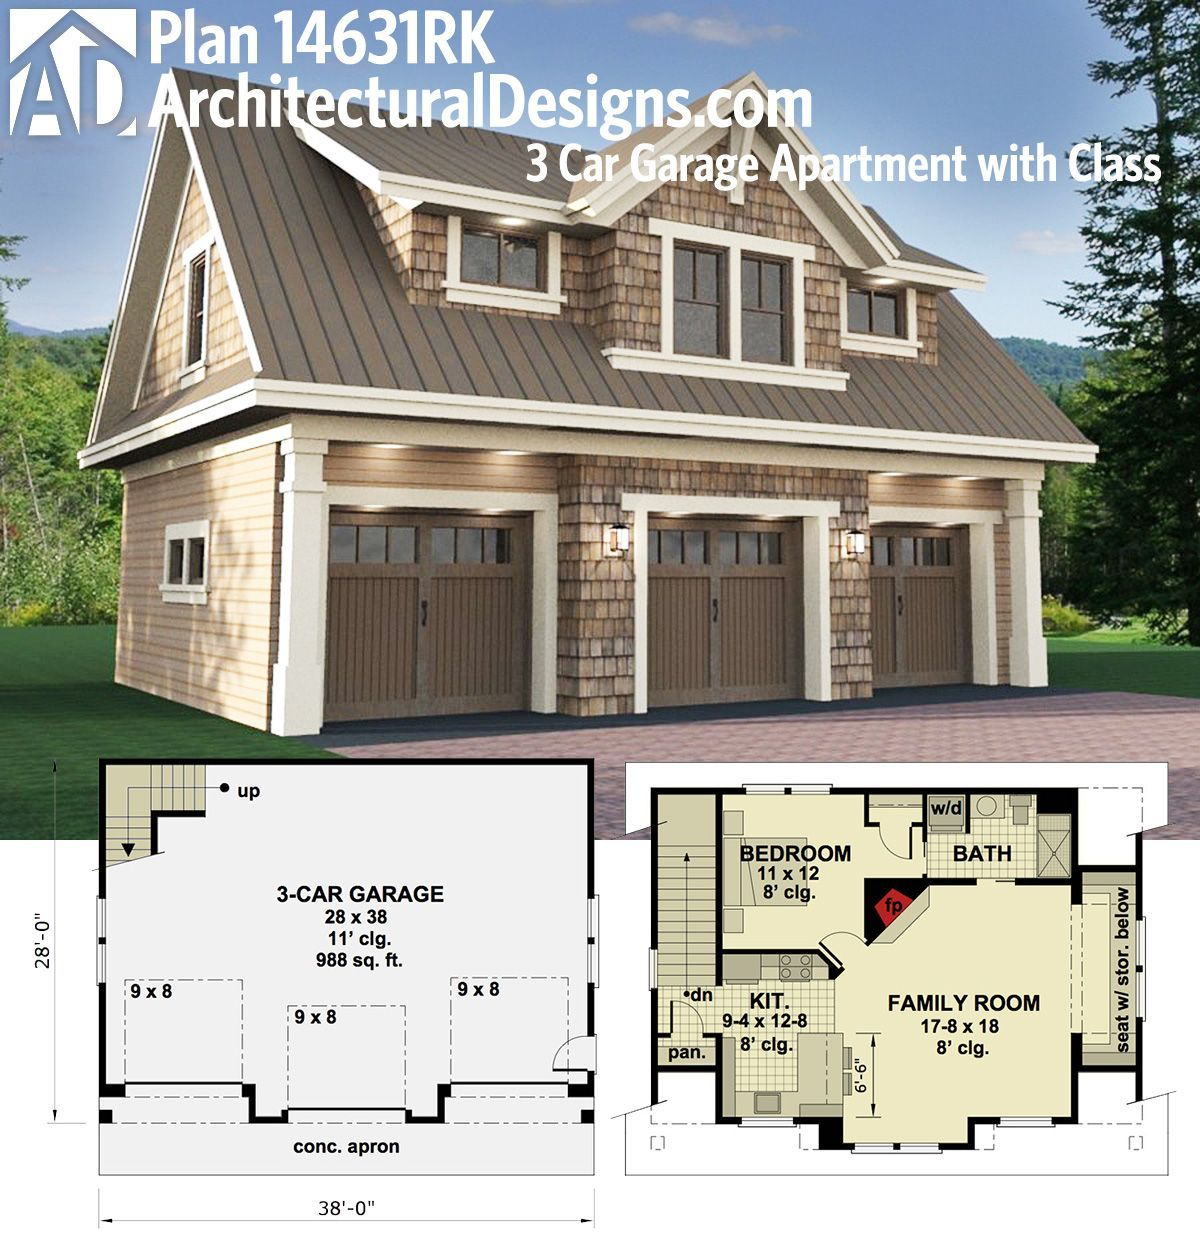 Architectural Designs Carriage House Plan 14631rk Gives You Parking For 3 Cars On The Main Floor Carriage House Plans Carriage House Garage Garage House Plans